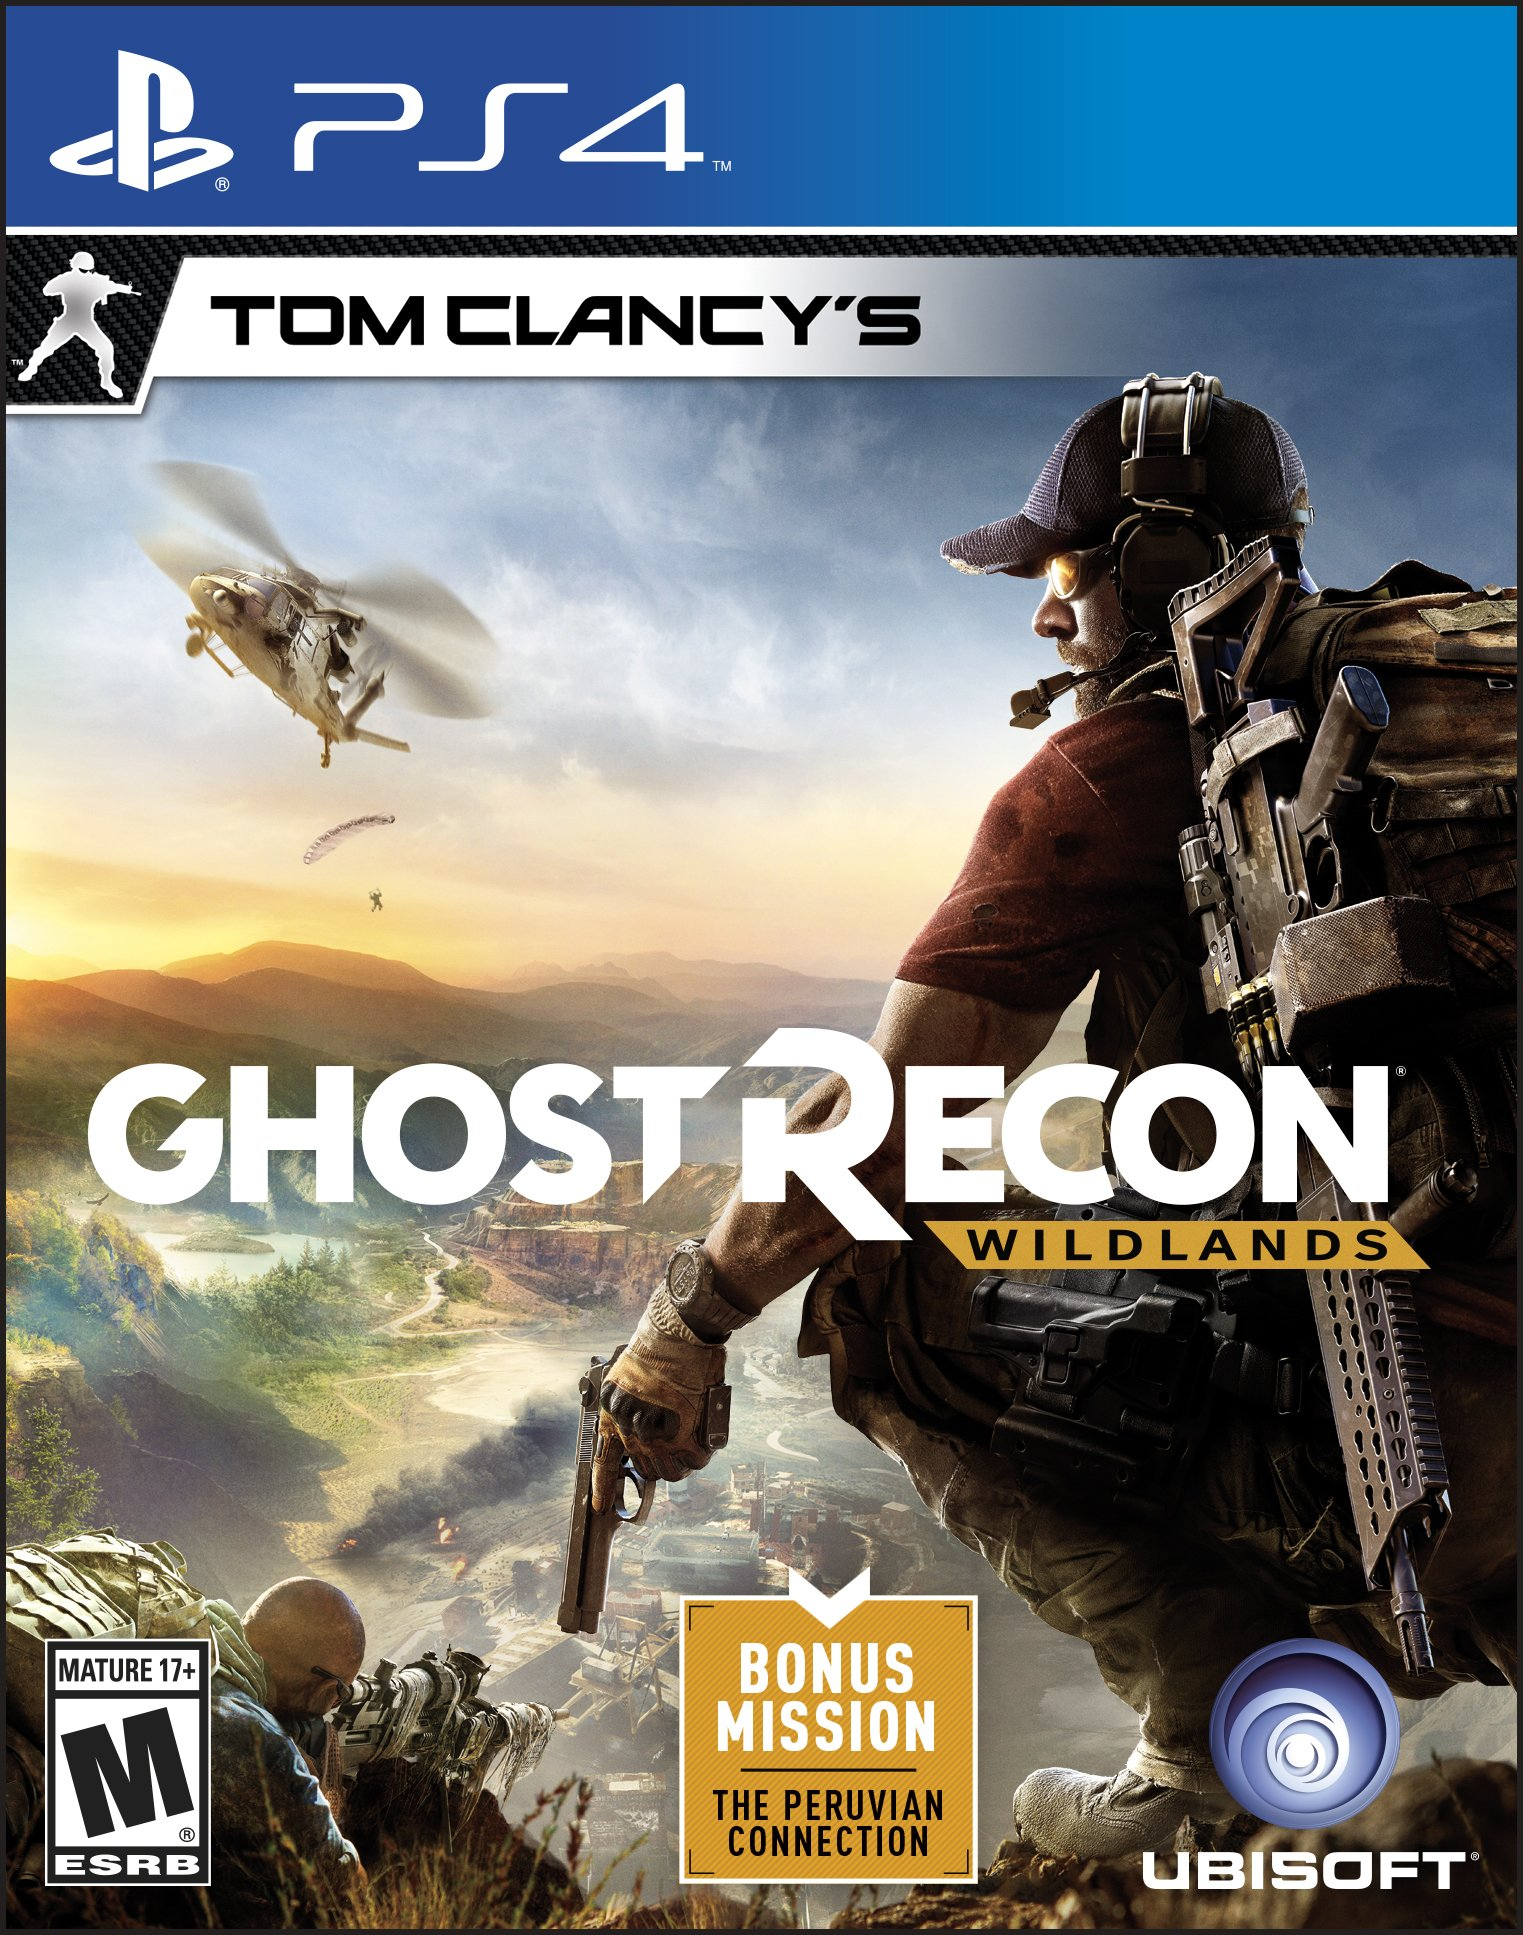 Check Out Ghost Recon Wildlands Tom ClancyProducts On Amazon!